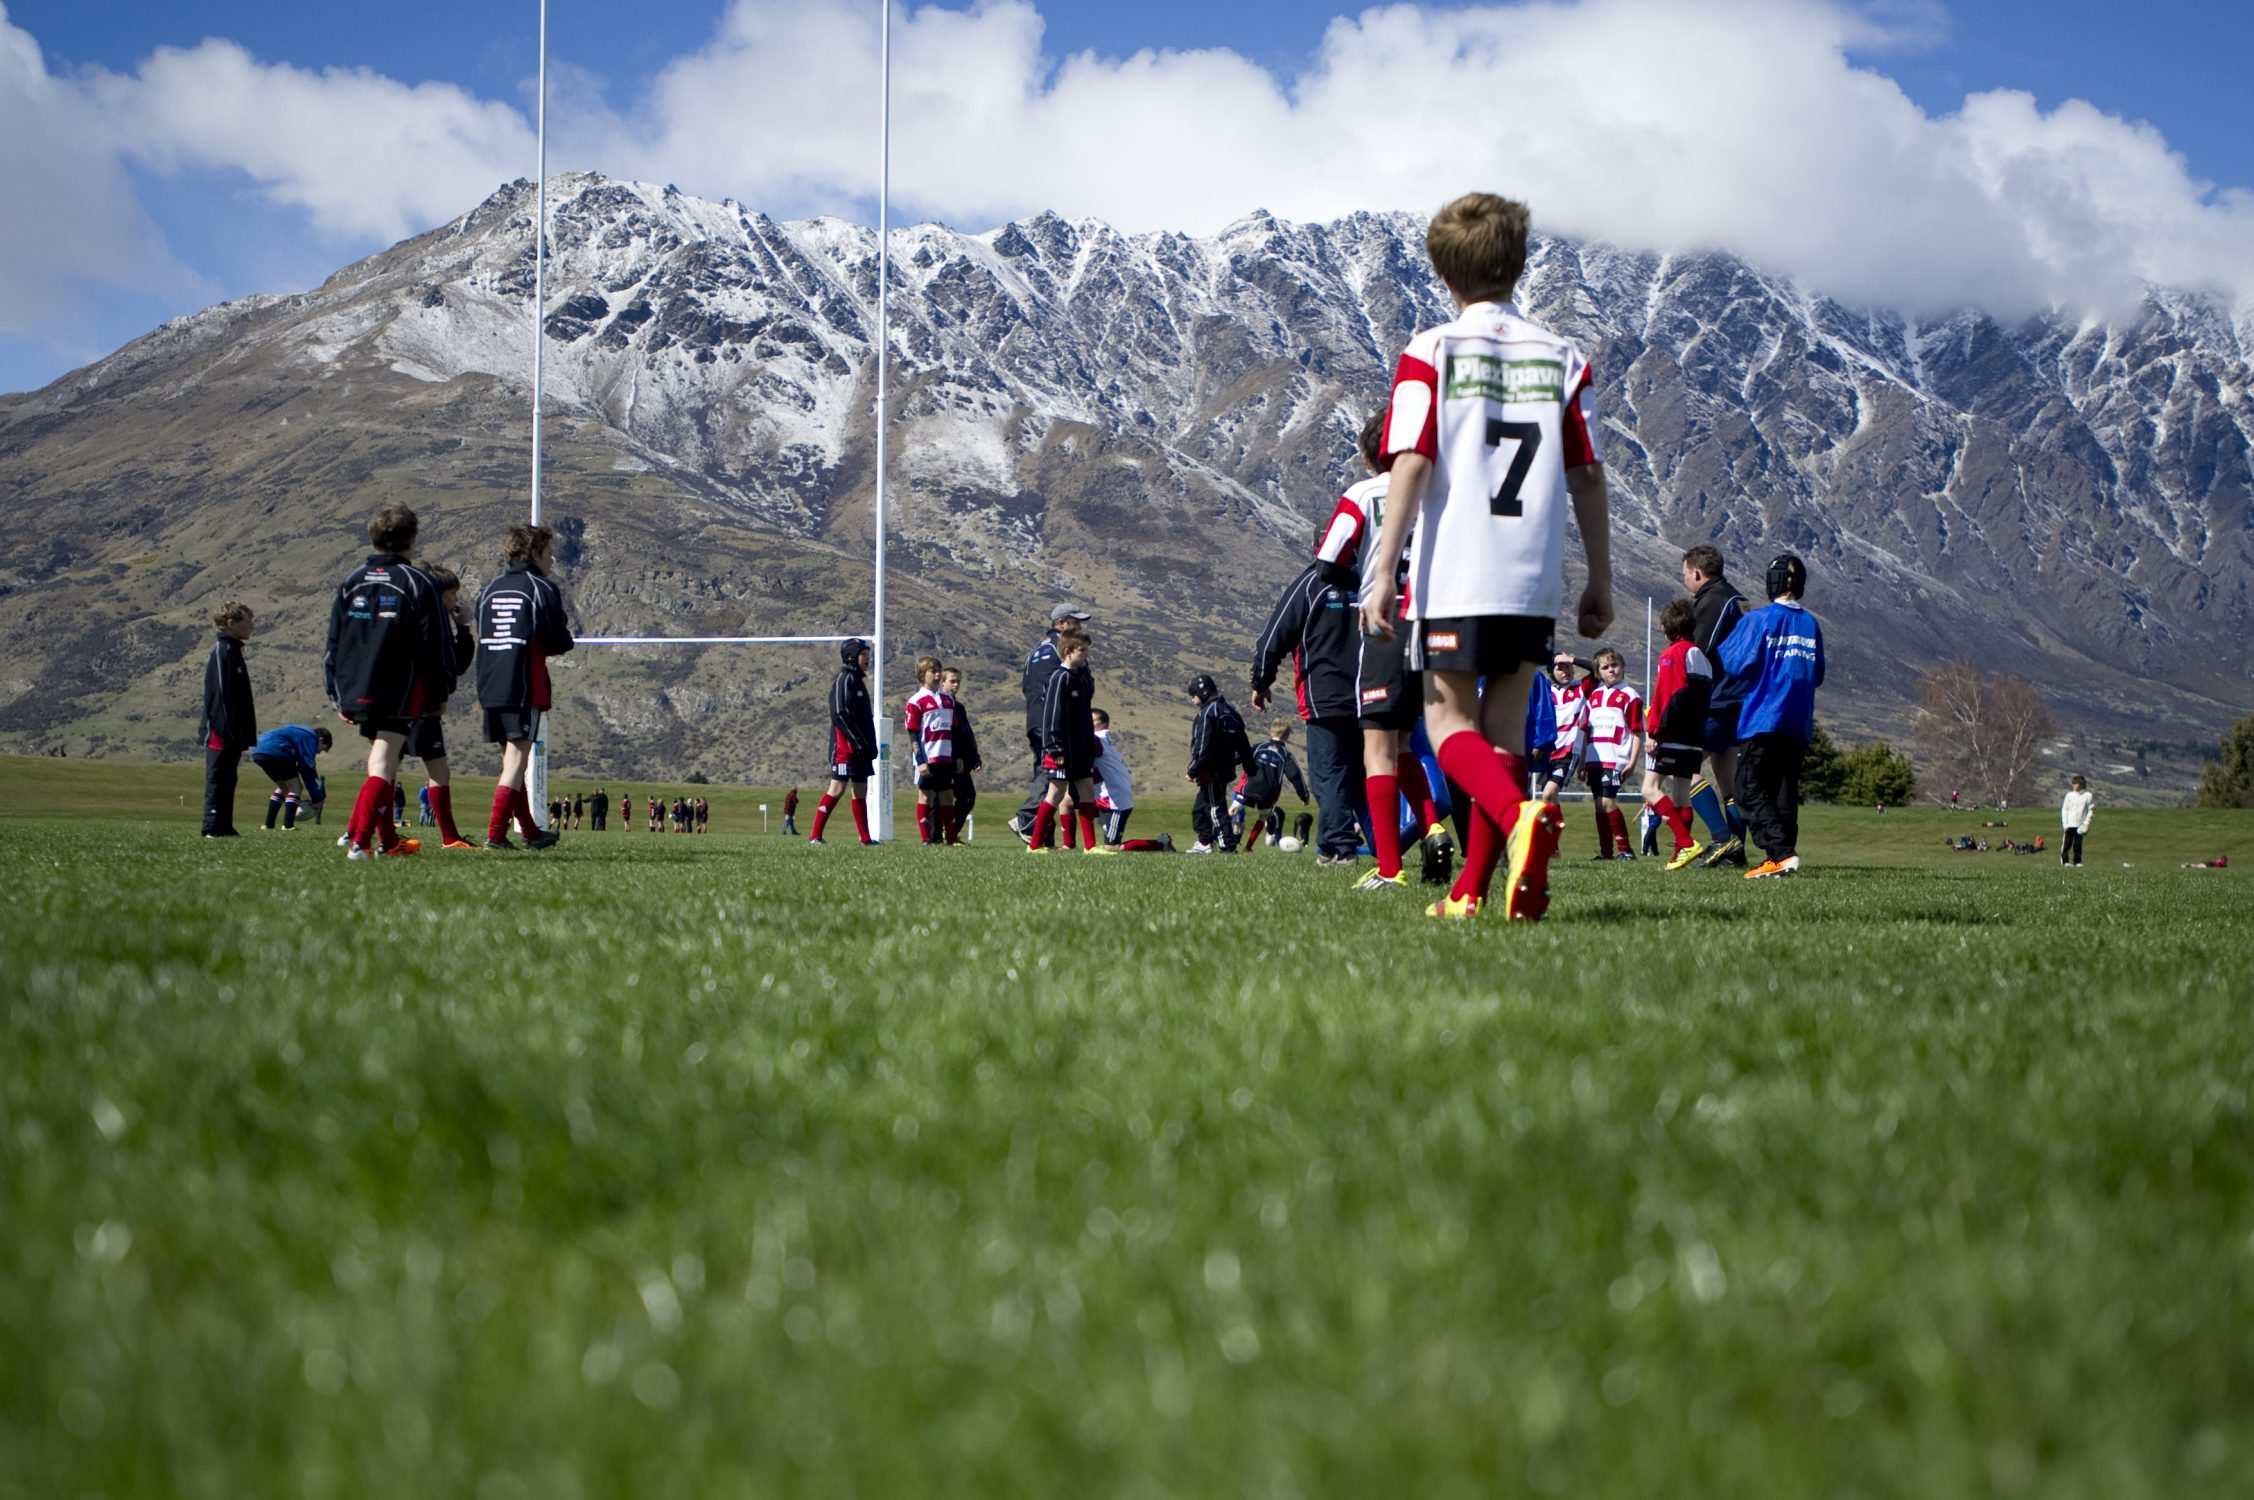 Global Games rugby sports tour